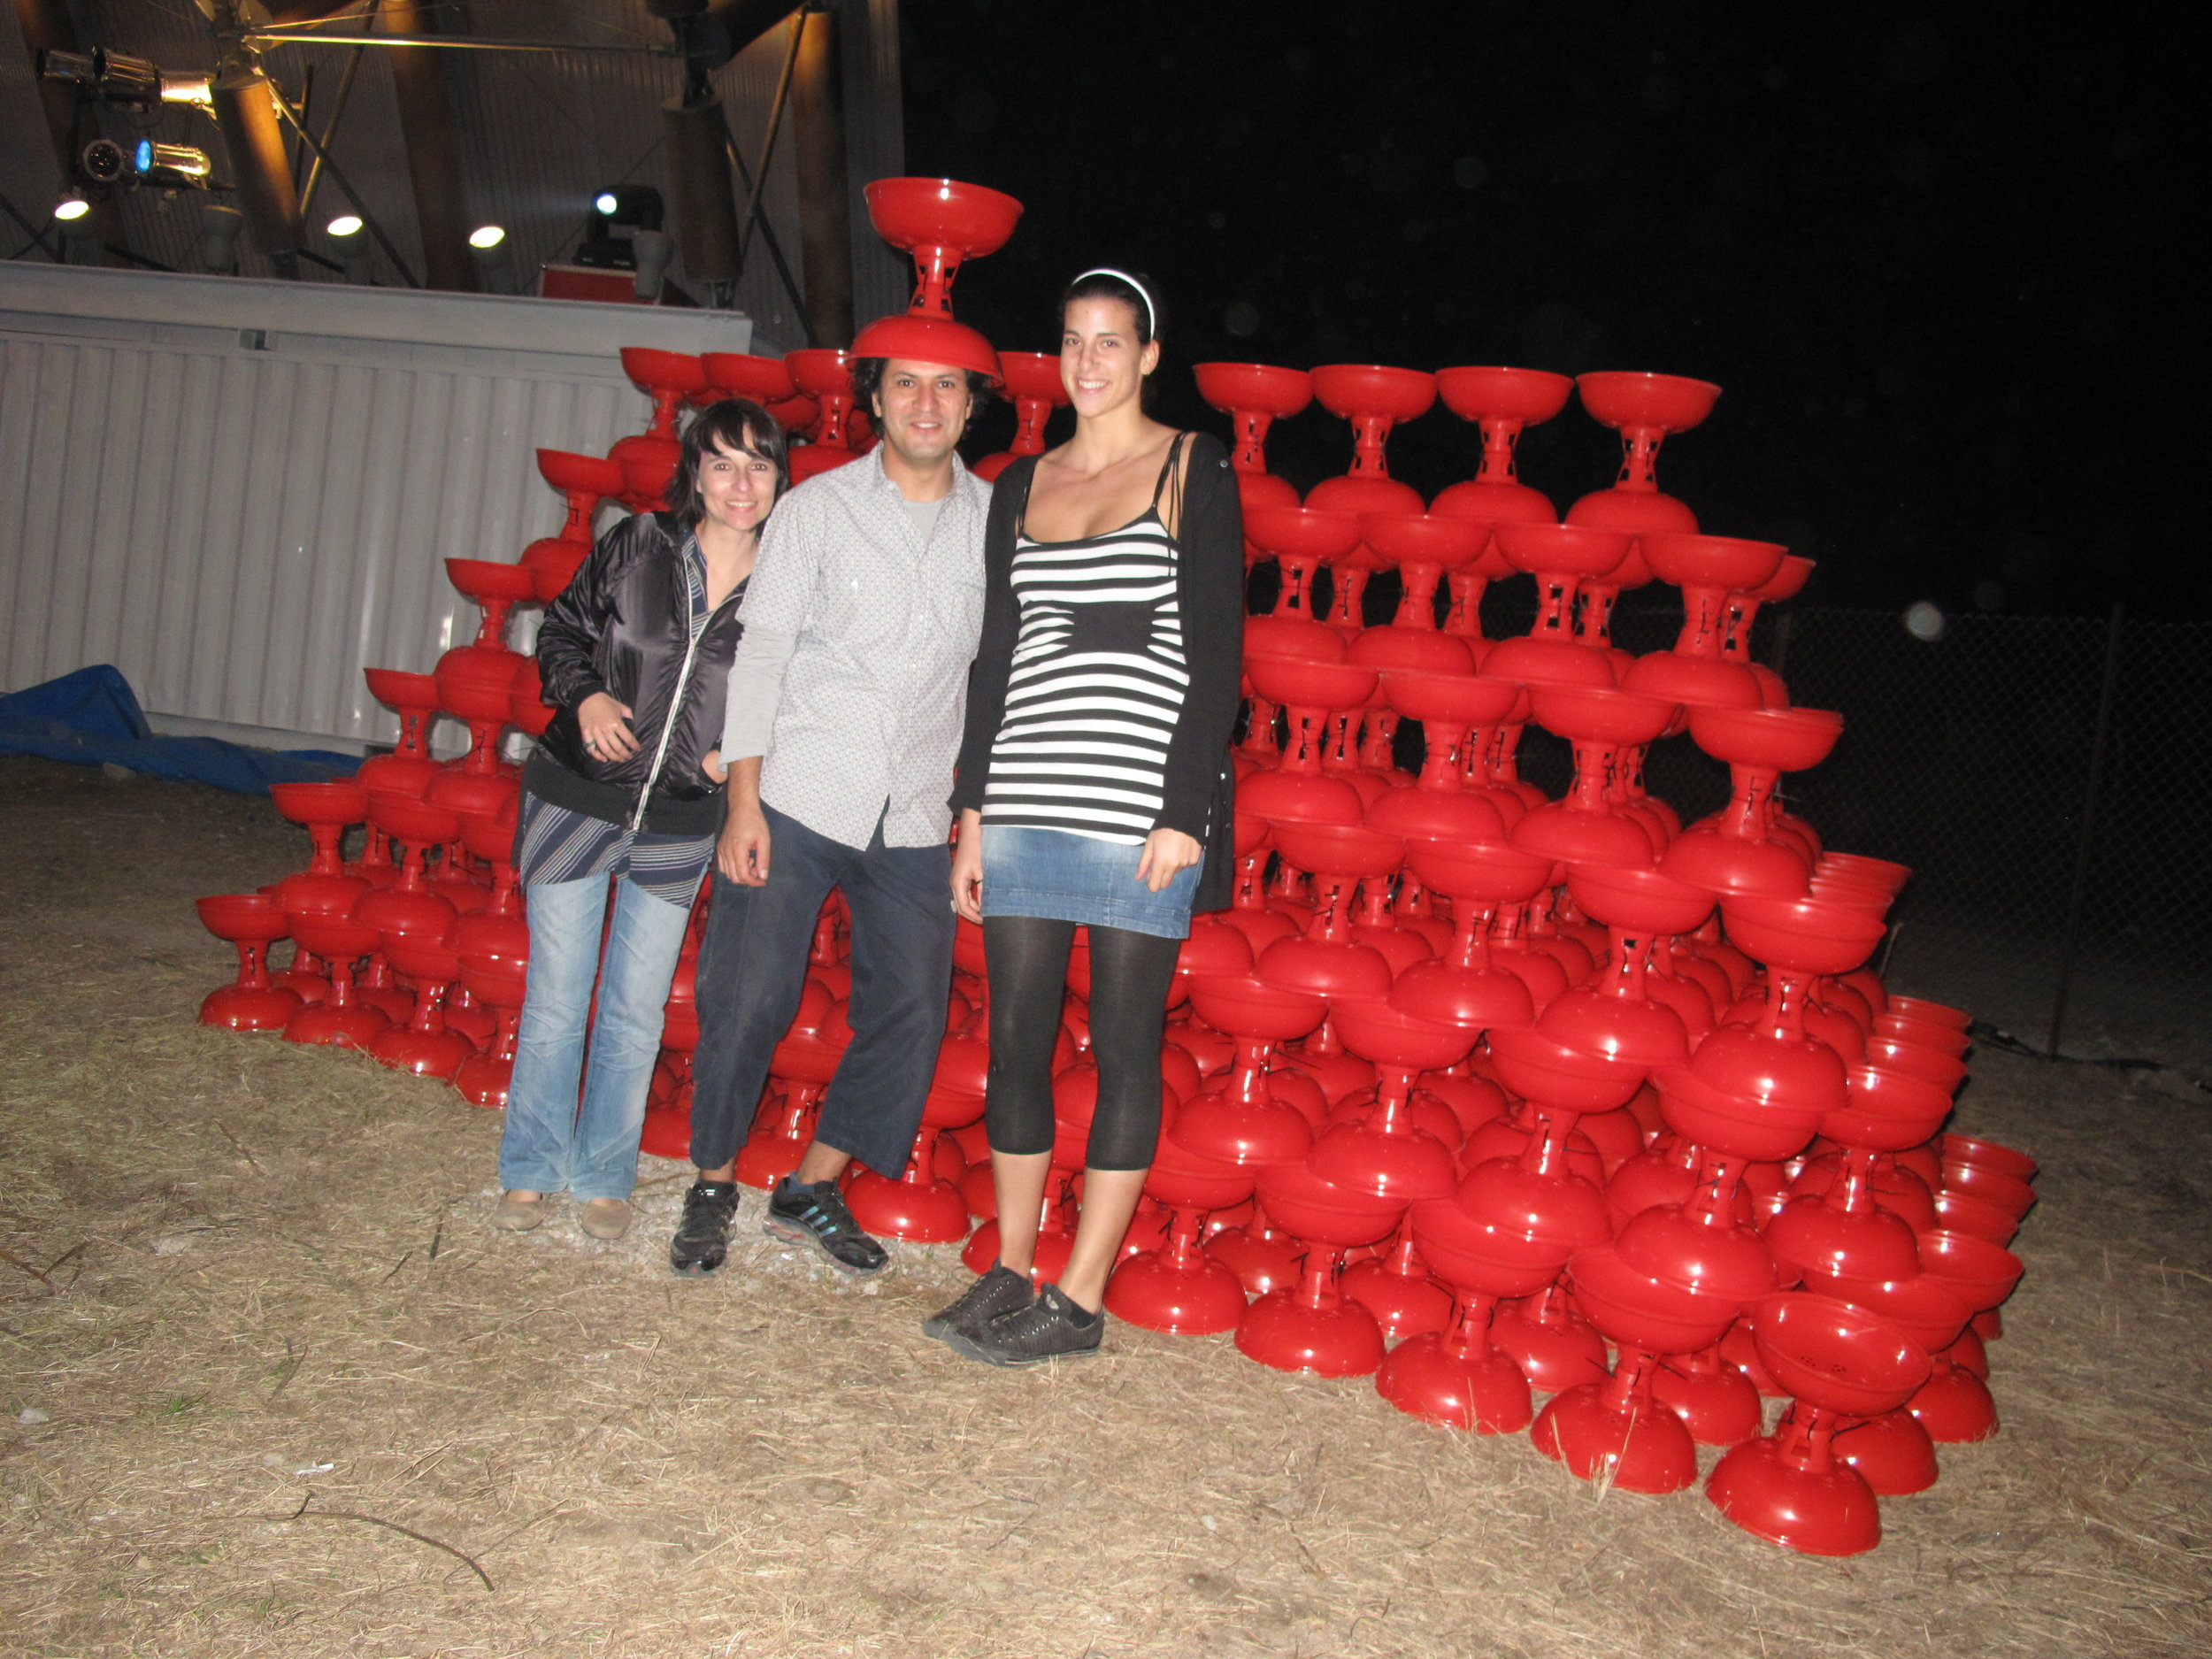 ...I helped set up an art installation in Hong Kong - with Lines Lab (Macau), December 2009